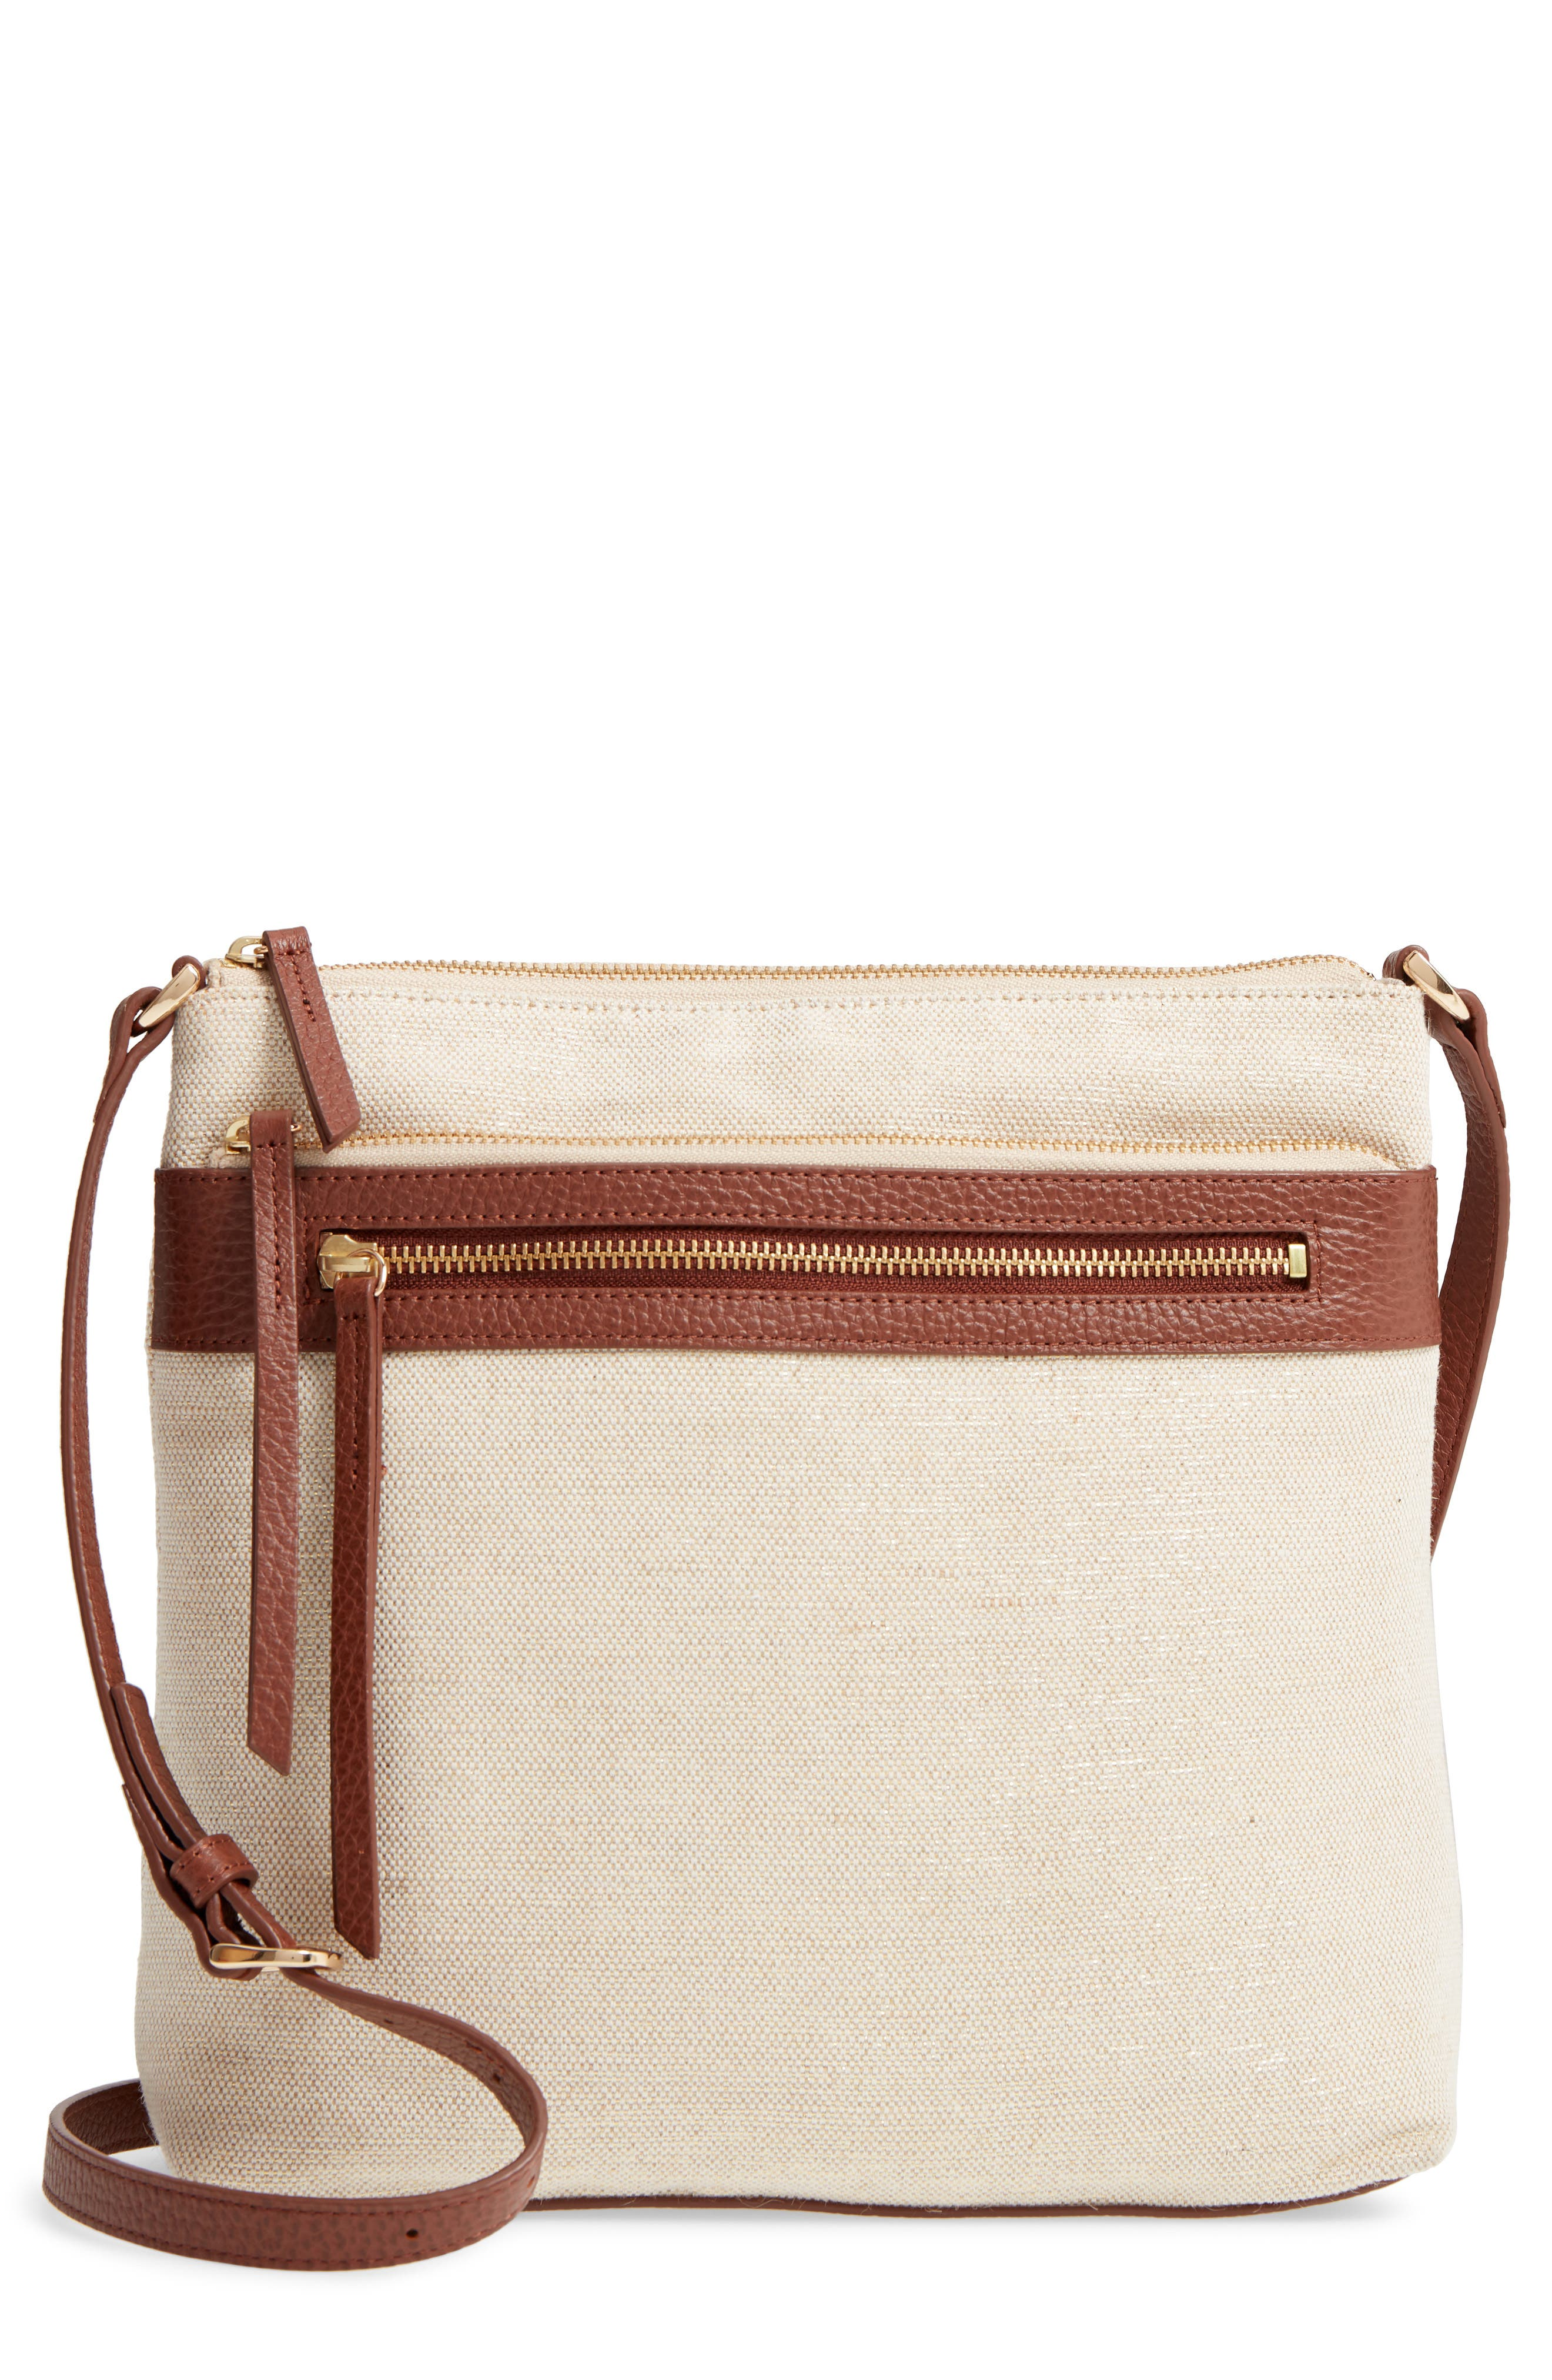 Kaison Linen & Leather Crossbody Bag,                         Main,                         color, Natural/ Gold